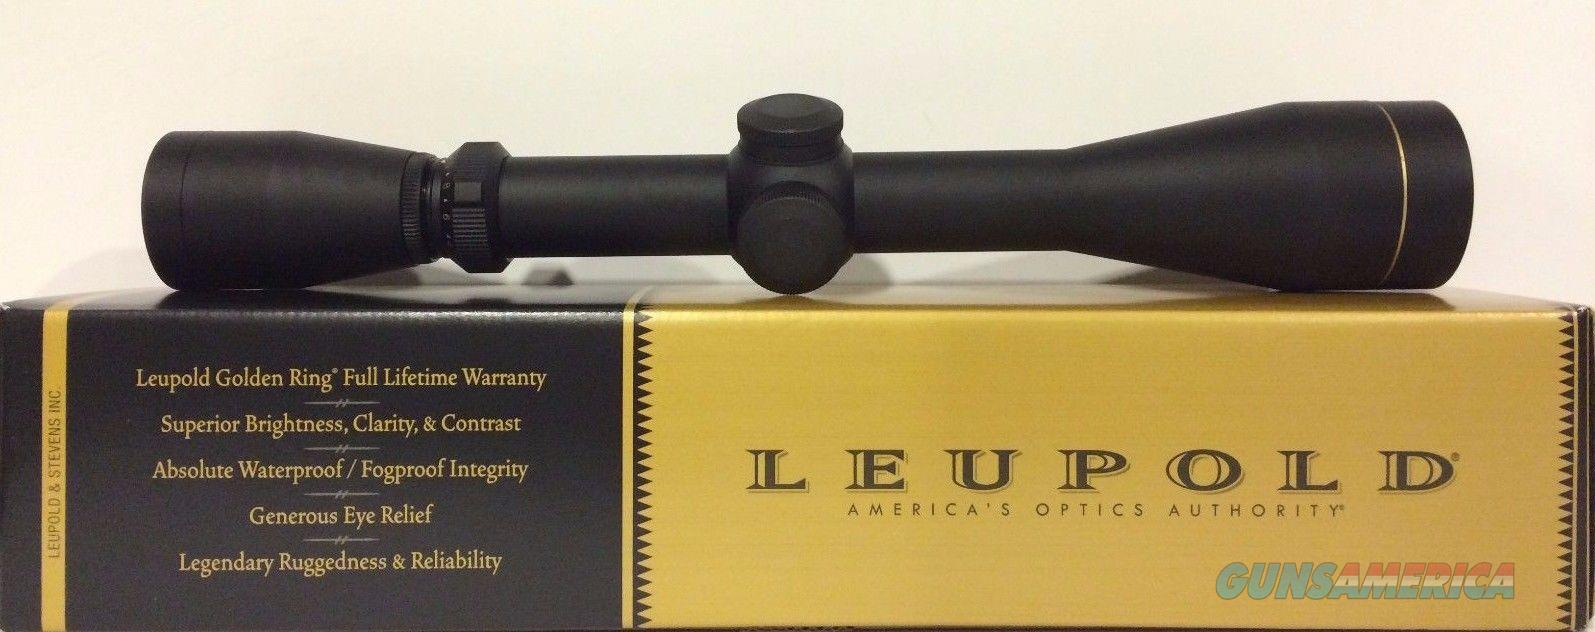 Leupold vx-1 3x9x40 matte duplex  Non-Guns > Scopes/Mounts/Rings & Optics > Rifle Scopes > Variable Focal Length